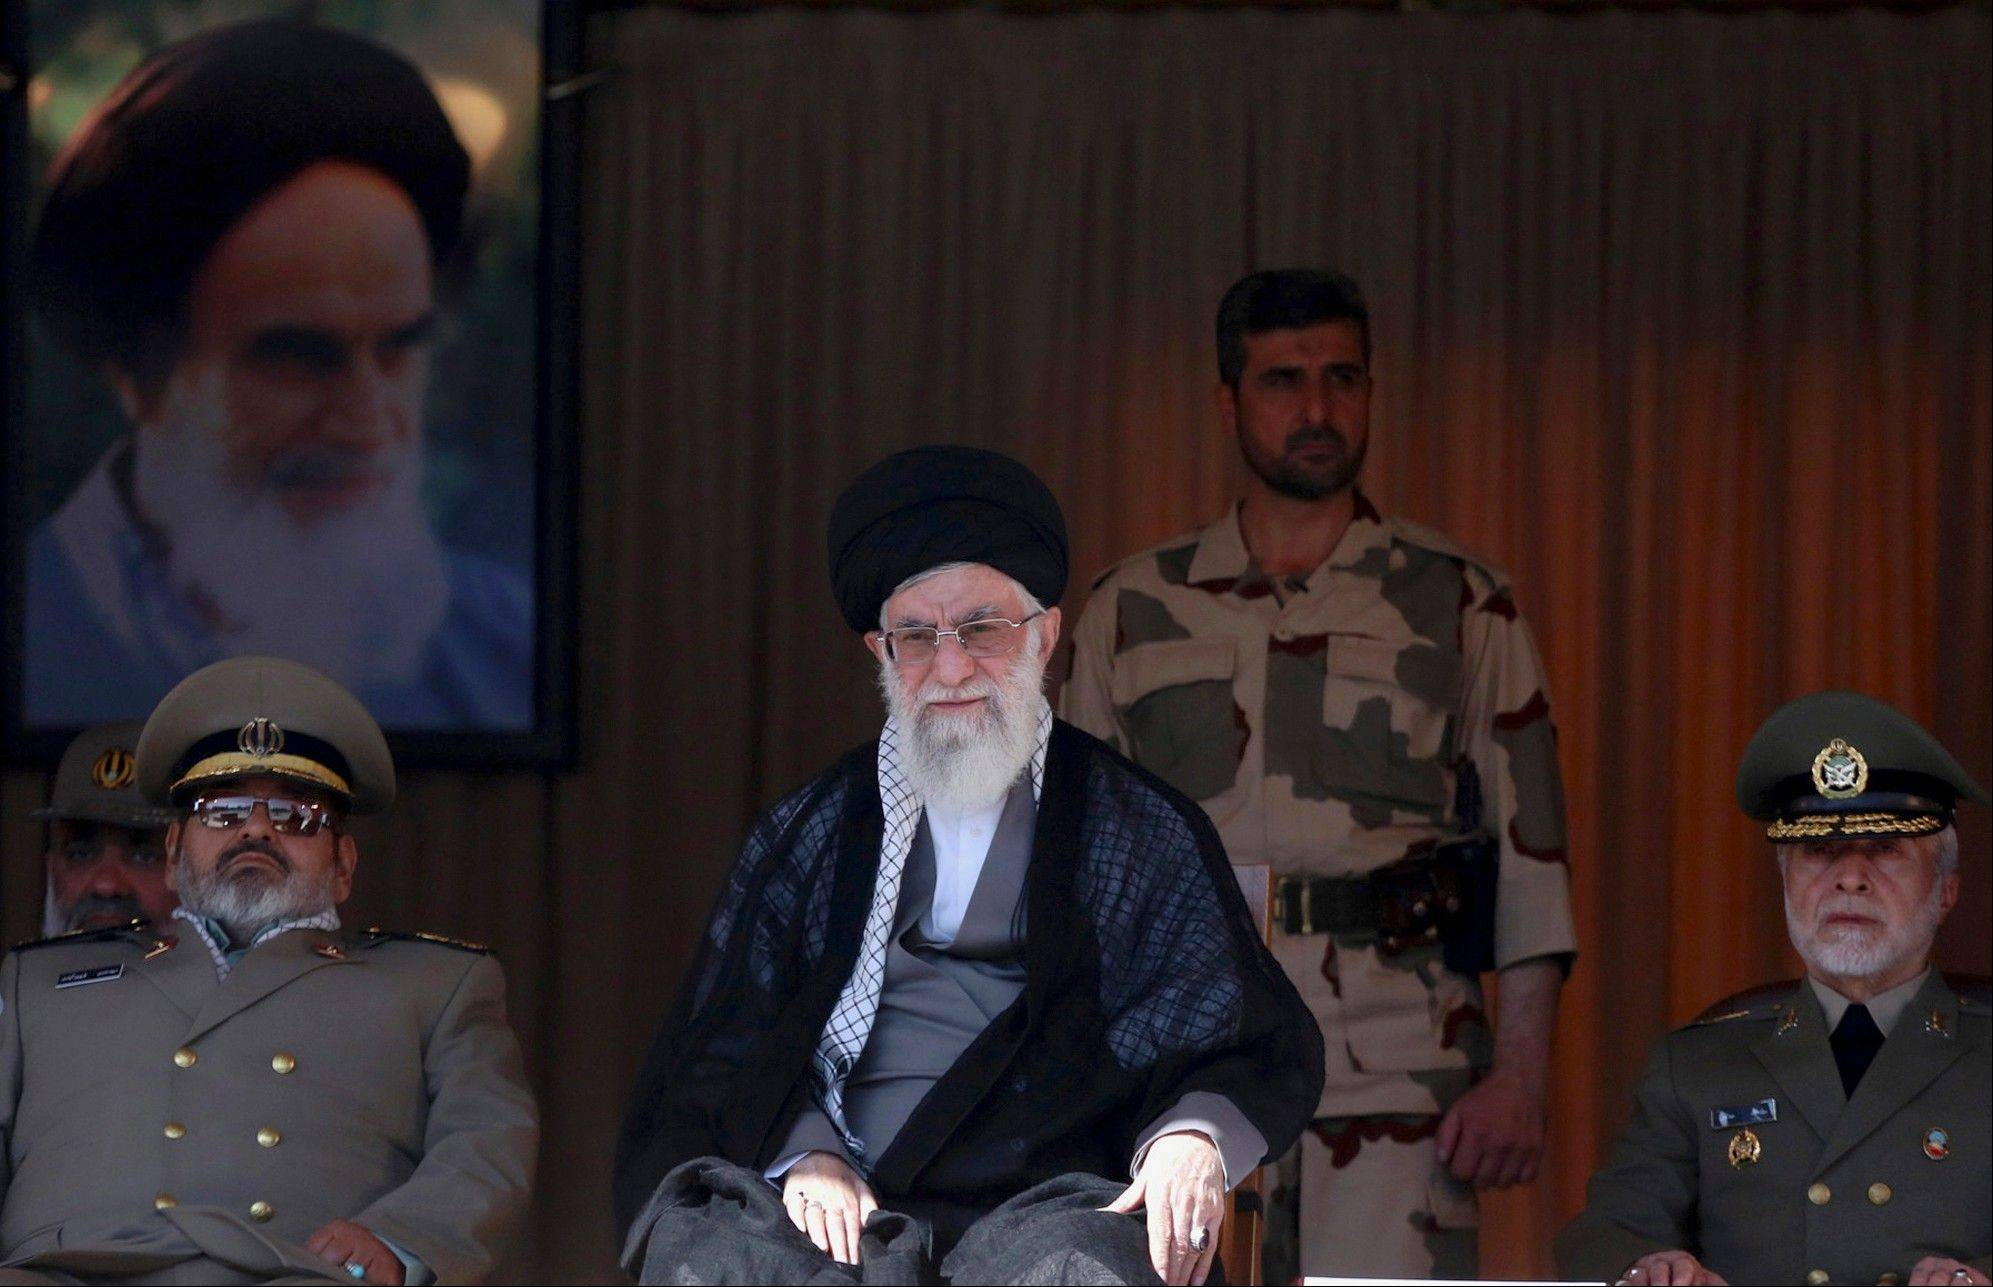 "In this picture released by an official website of the office of the Iranian supreme leader, Supreme Leader Ayatollah Ali Khamenei, center, attends a graduation ceremony of army cadets, while Chief of the General Staff of Iran's Armed Forces, Gen. Hasan Firouzabadi, left, and army commander Ataollah Salehi, right, accompany him in Tehran, Iran, Saturday, Oct. 5, 2013. Iran's top leader said some aspects of Hassan Rouhani's trip to New York last month were ""not appropriate,"" but has reiterated his crucial support for the president's policy of outreach to the West. A portrait of the late revolutionary founder Ayatollah Khomeini hangs in the background. (AP Photo/Office of the Iranian Supreme Leader)"